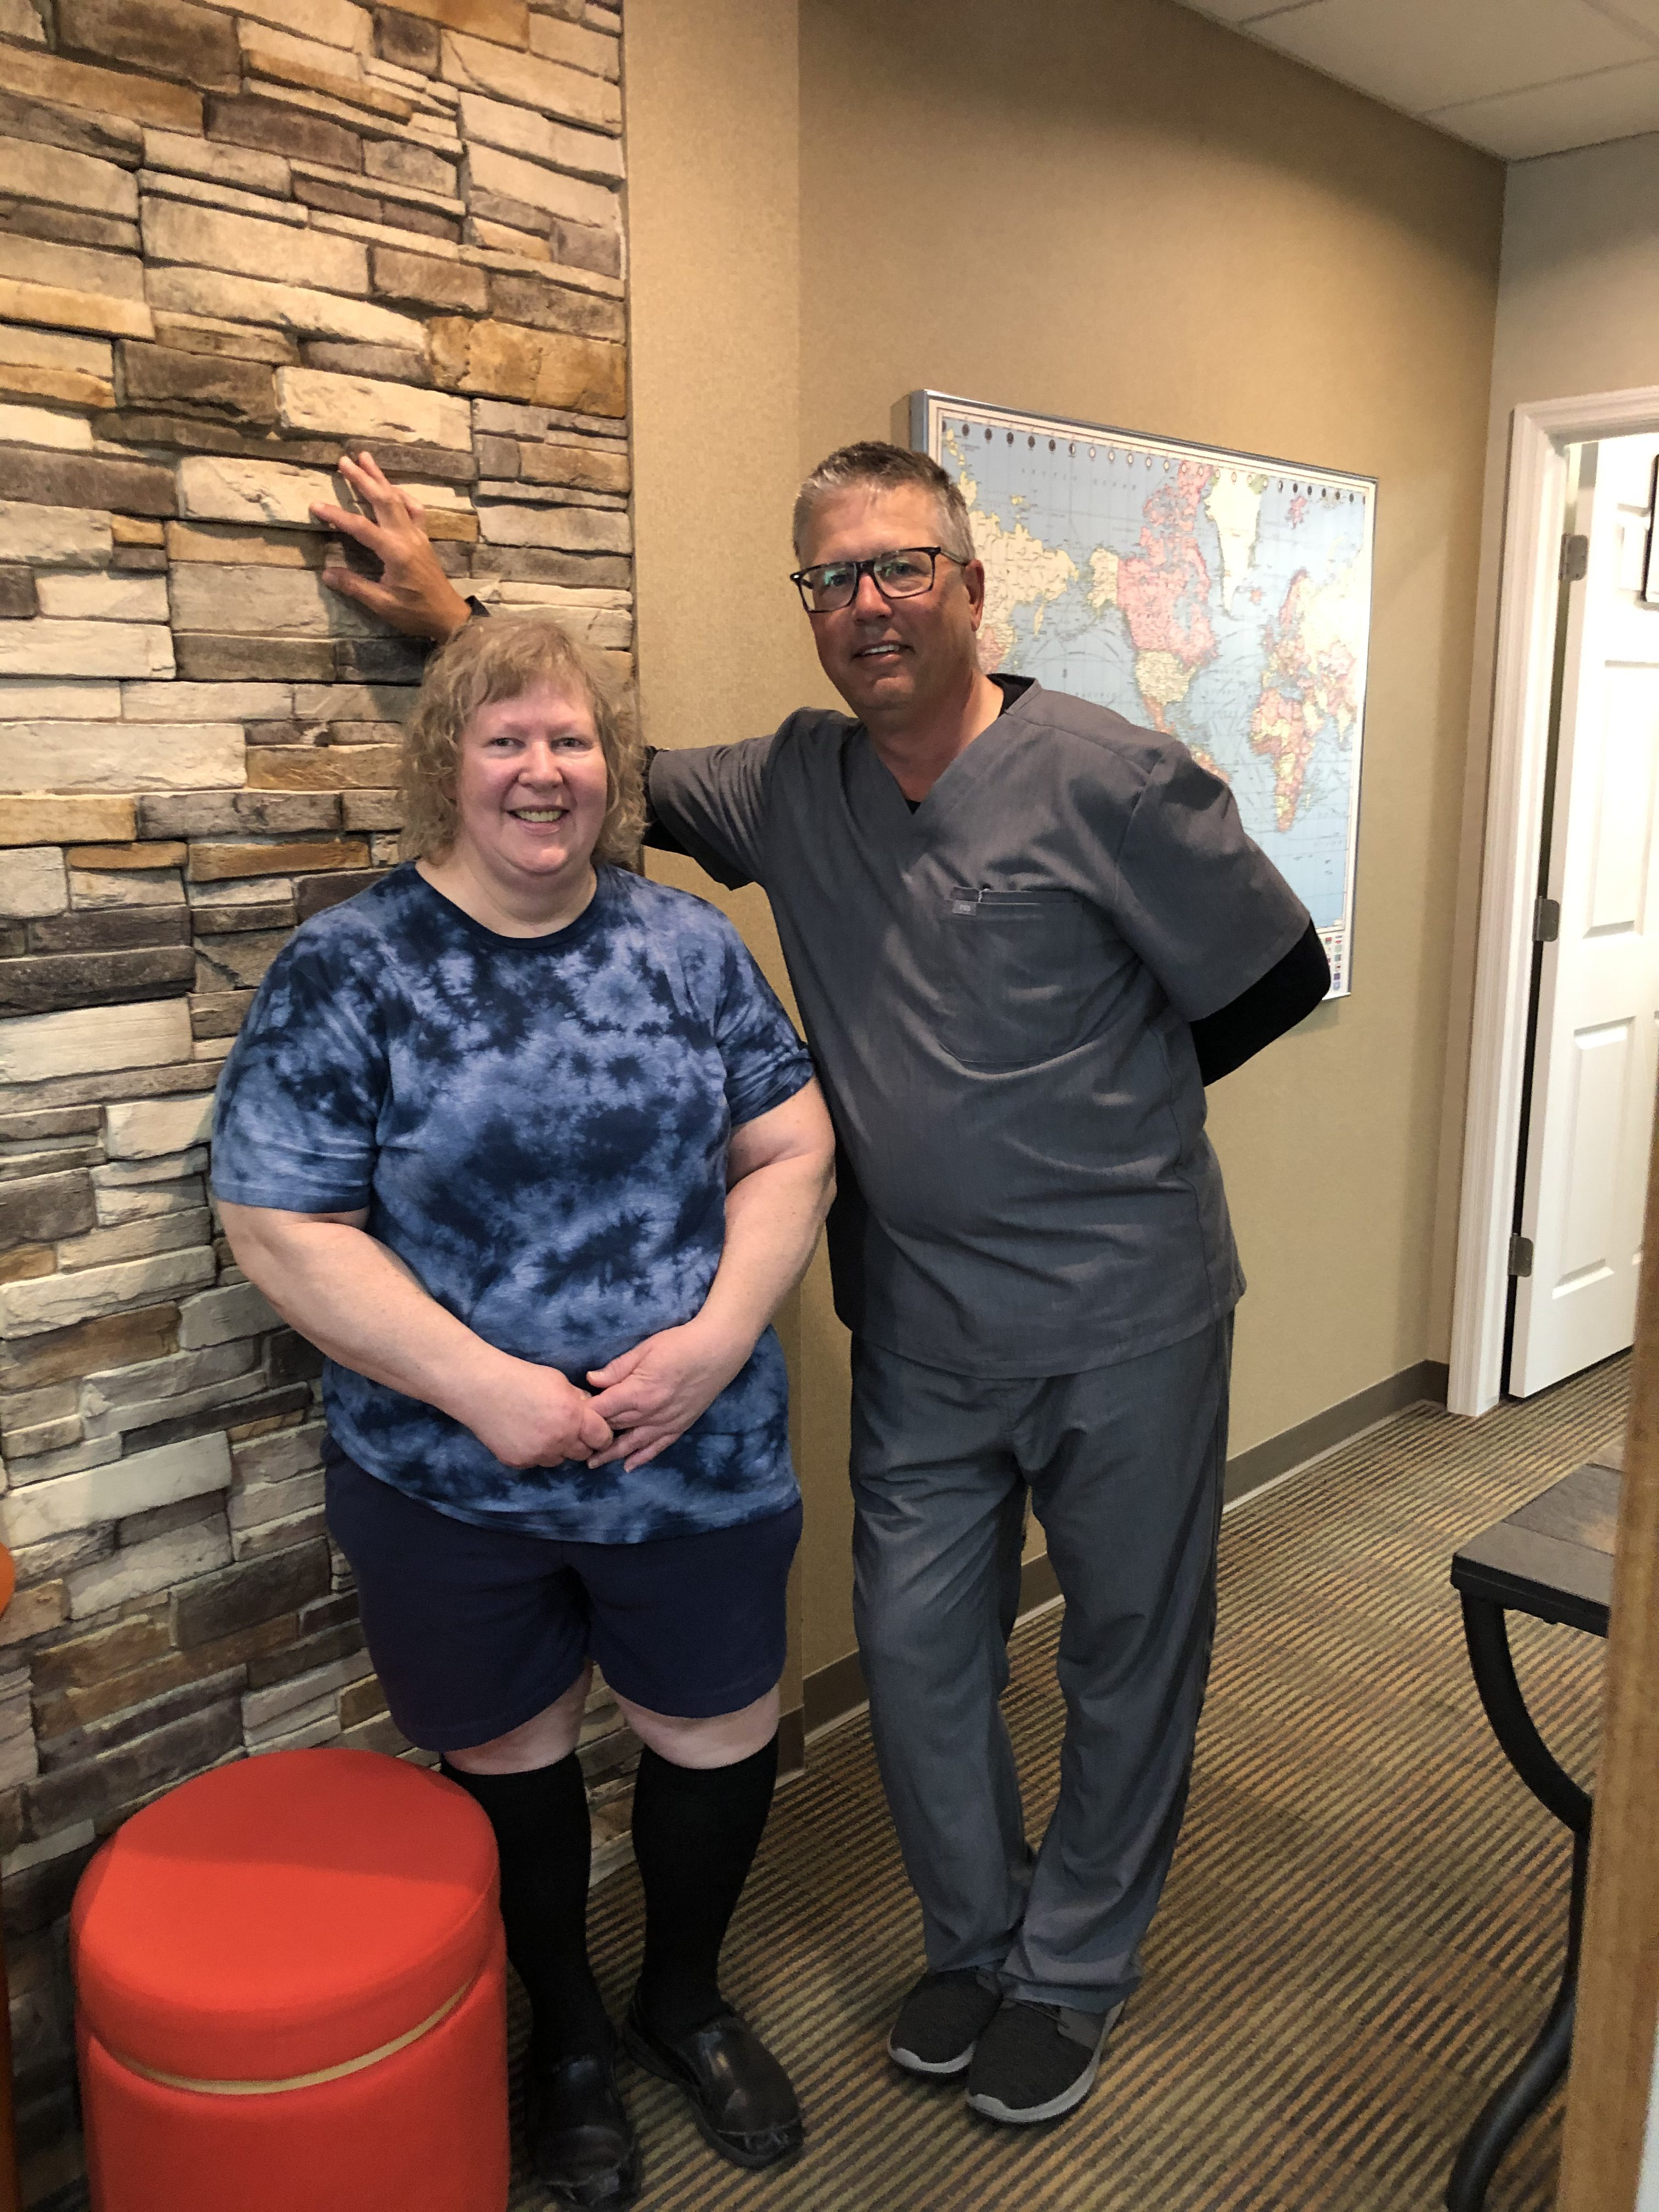 Nearly $430,000 in Oral Treatment and Supplies for Elderly, Disabled Adults Made Possible by Wisconsin Dental Association Foundation's Donated Dental Services